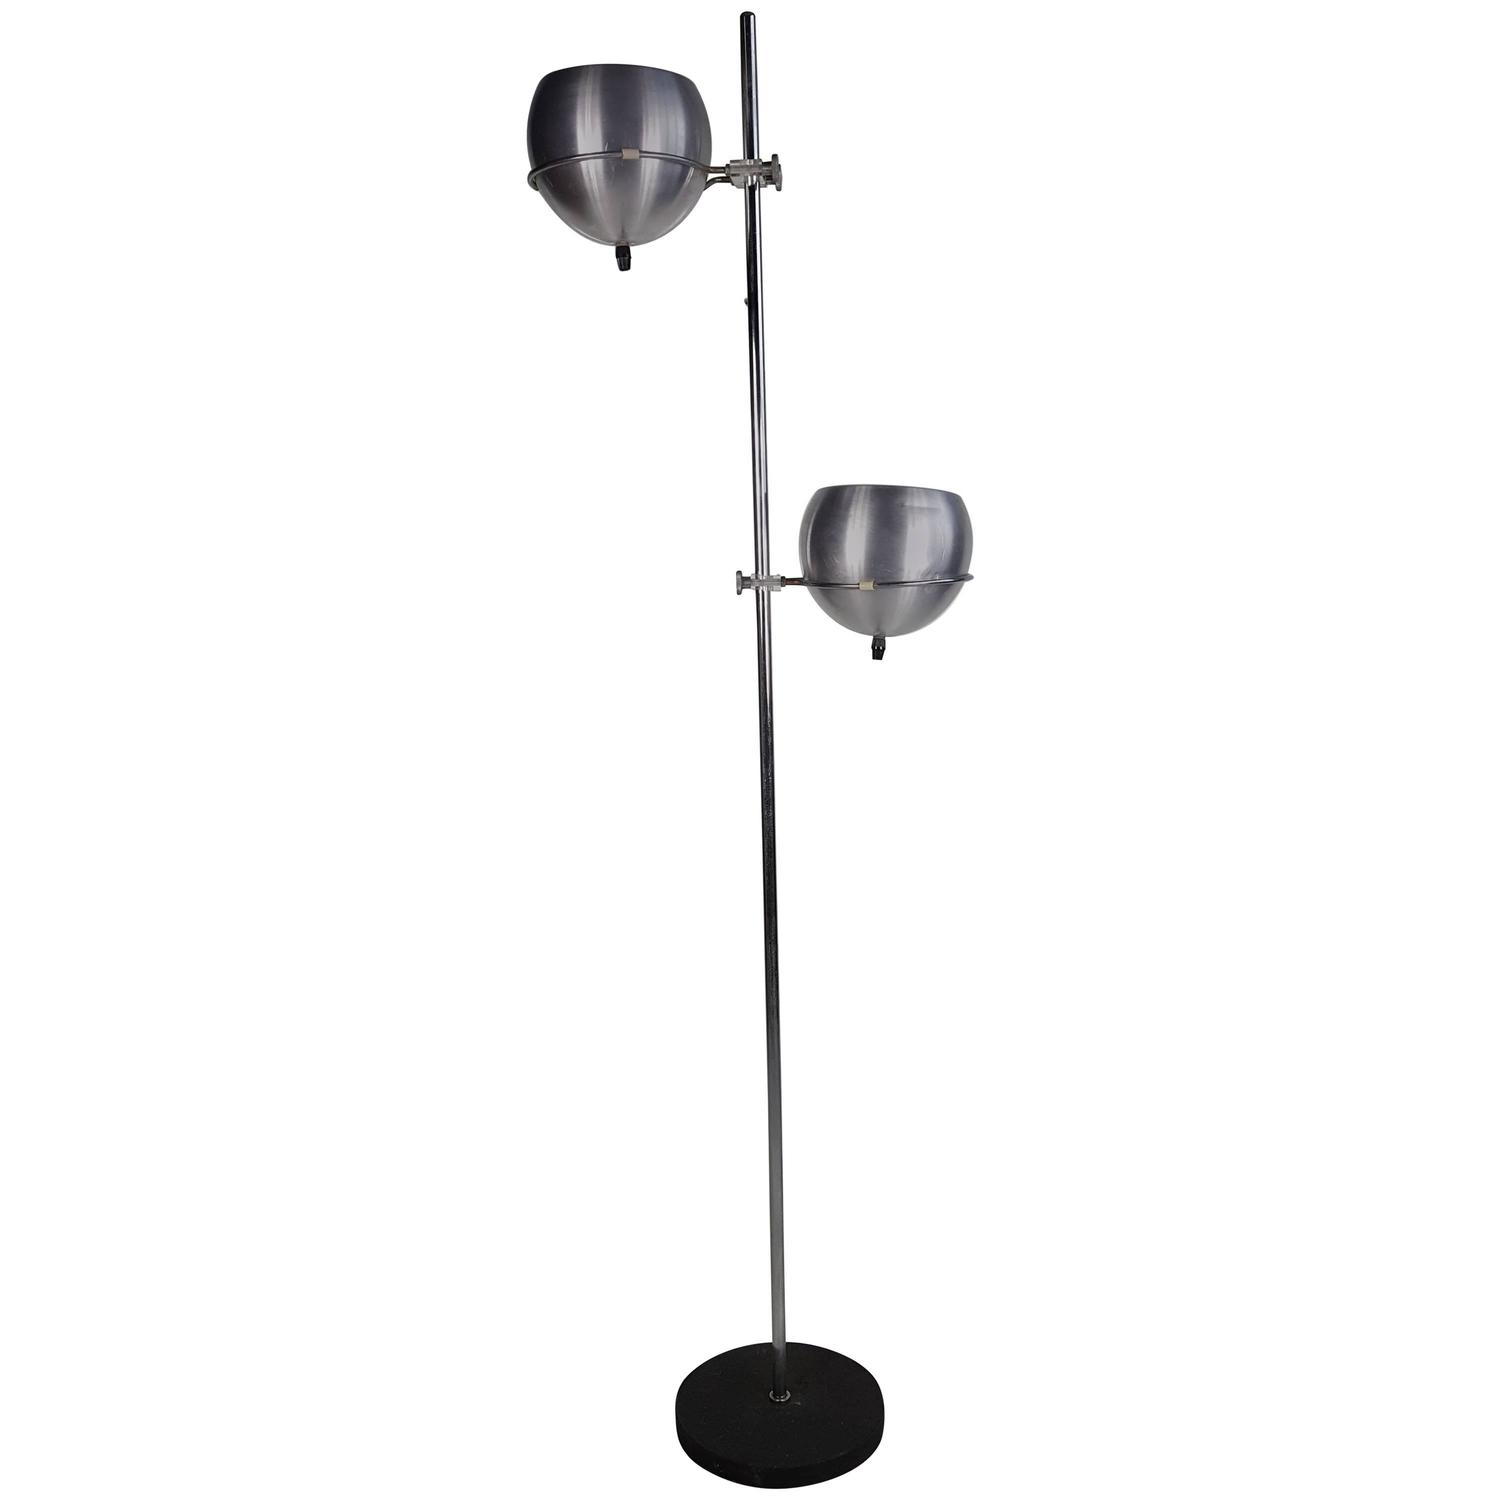 free shipping tray garden floors floor lahti carson chrome with carrington lamp product overstock today home